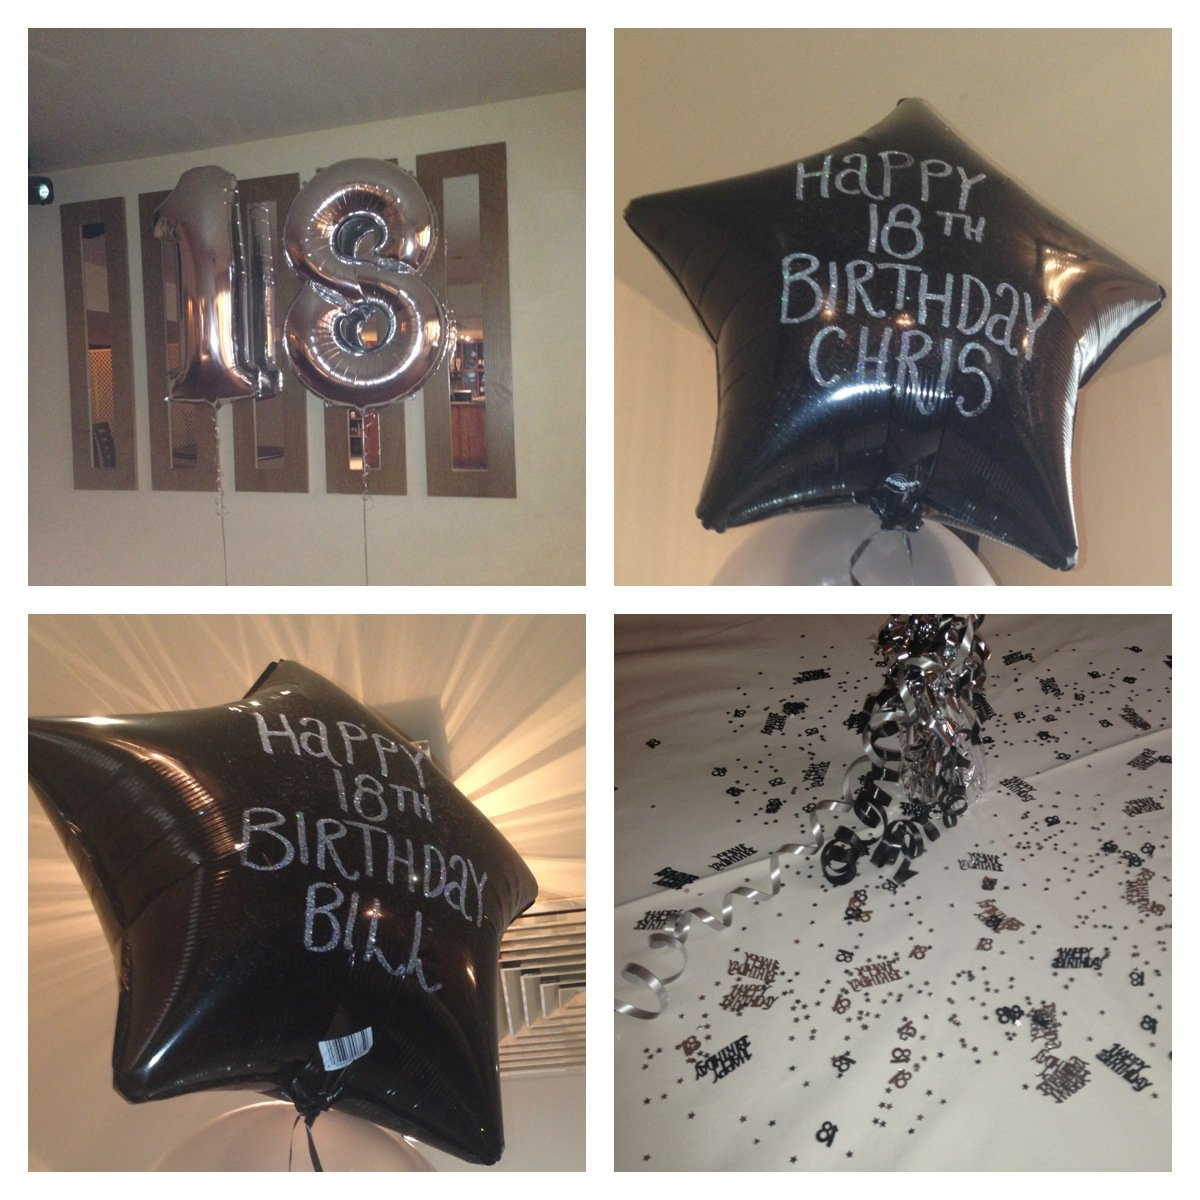 18th Birthday balloons at Reids